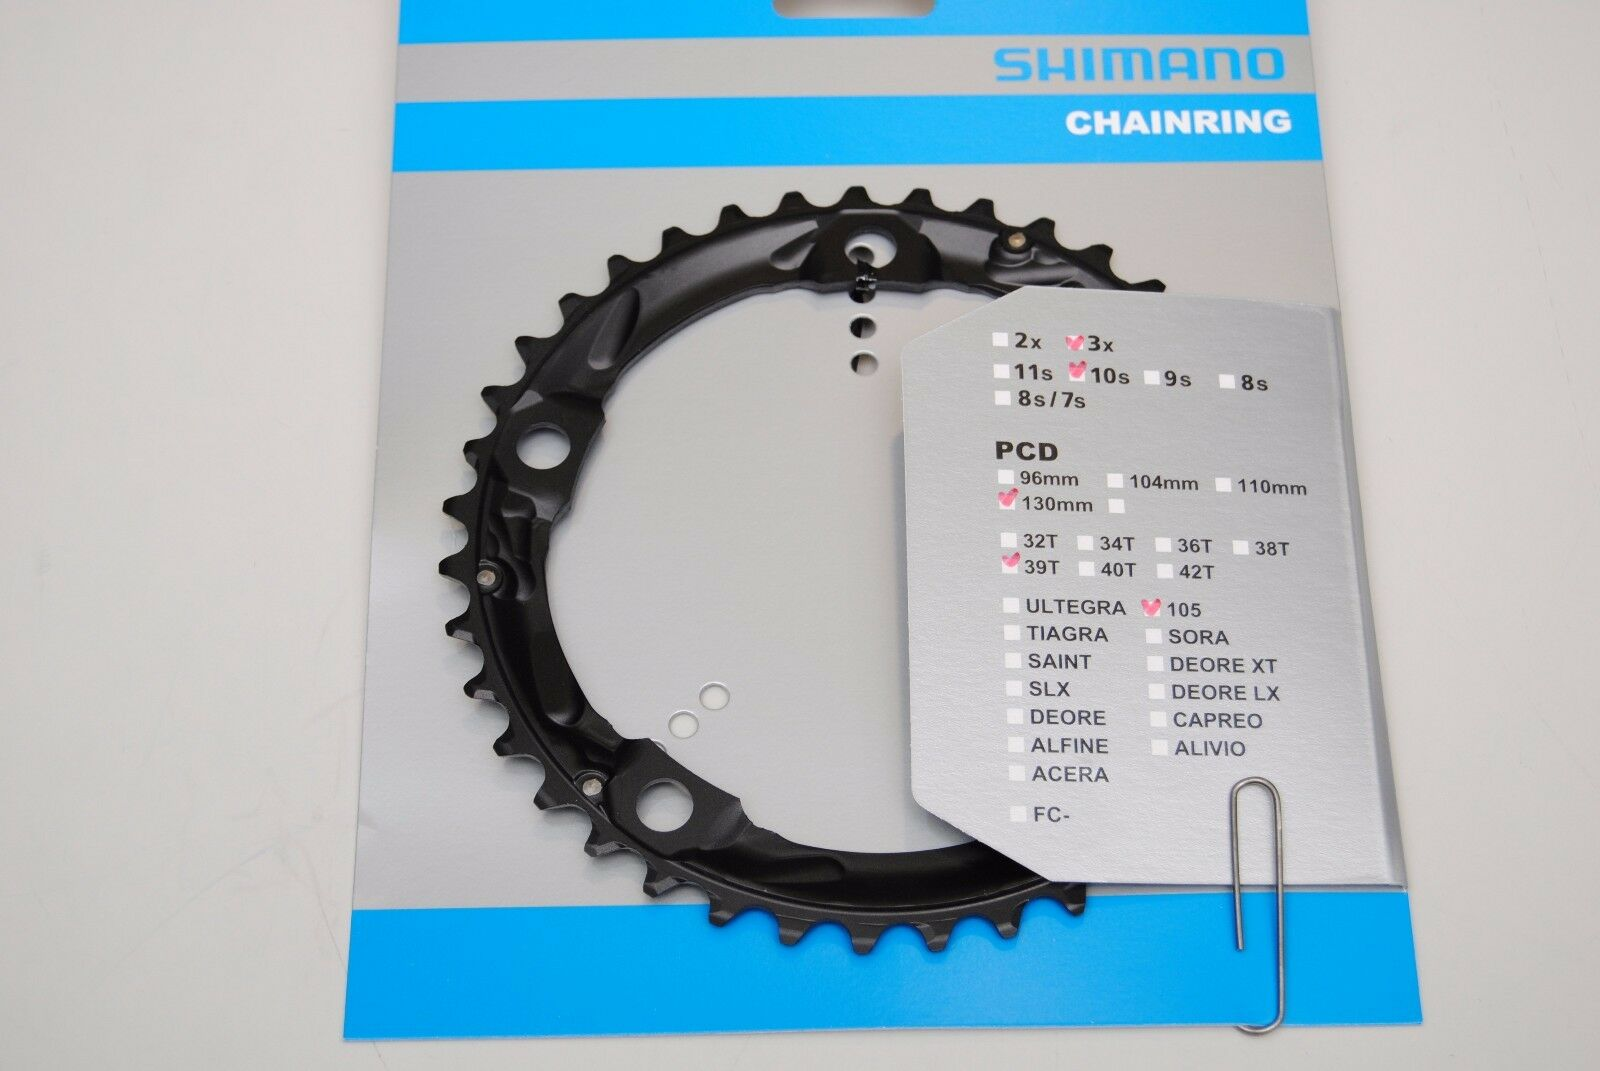 SHIMANO 105 5703-L 39T X 130MM 10-SPEED TRIPLE MIDDLE BLACK BICYCLE CHAINRING